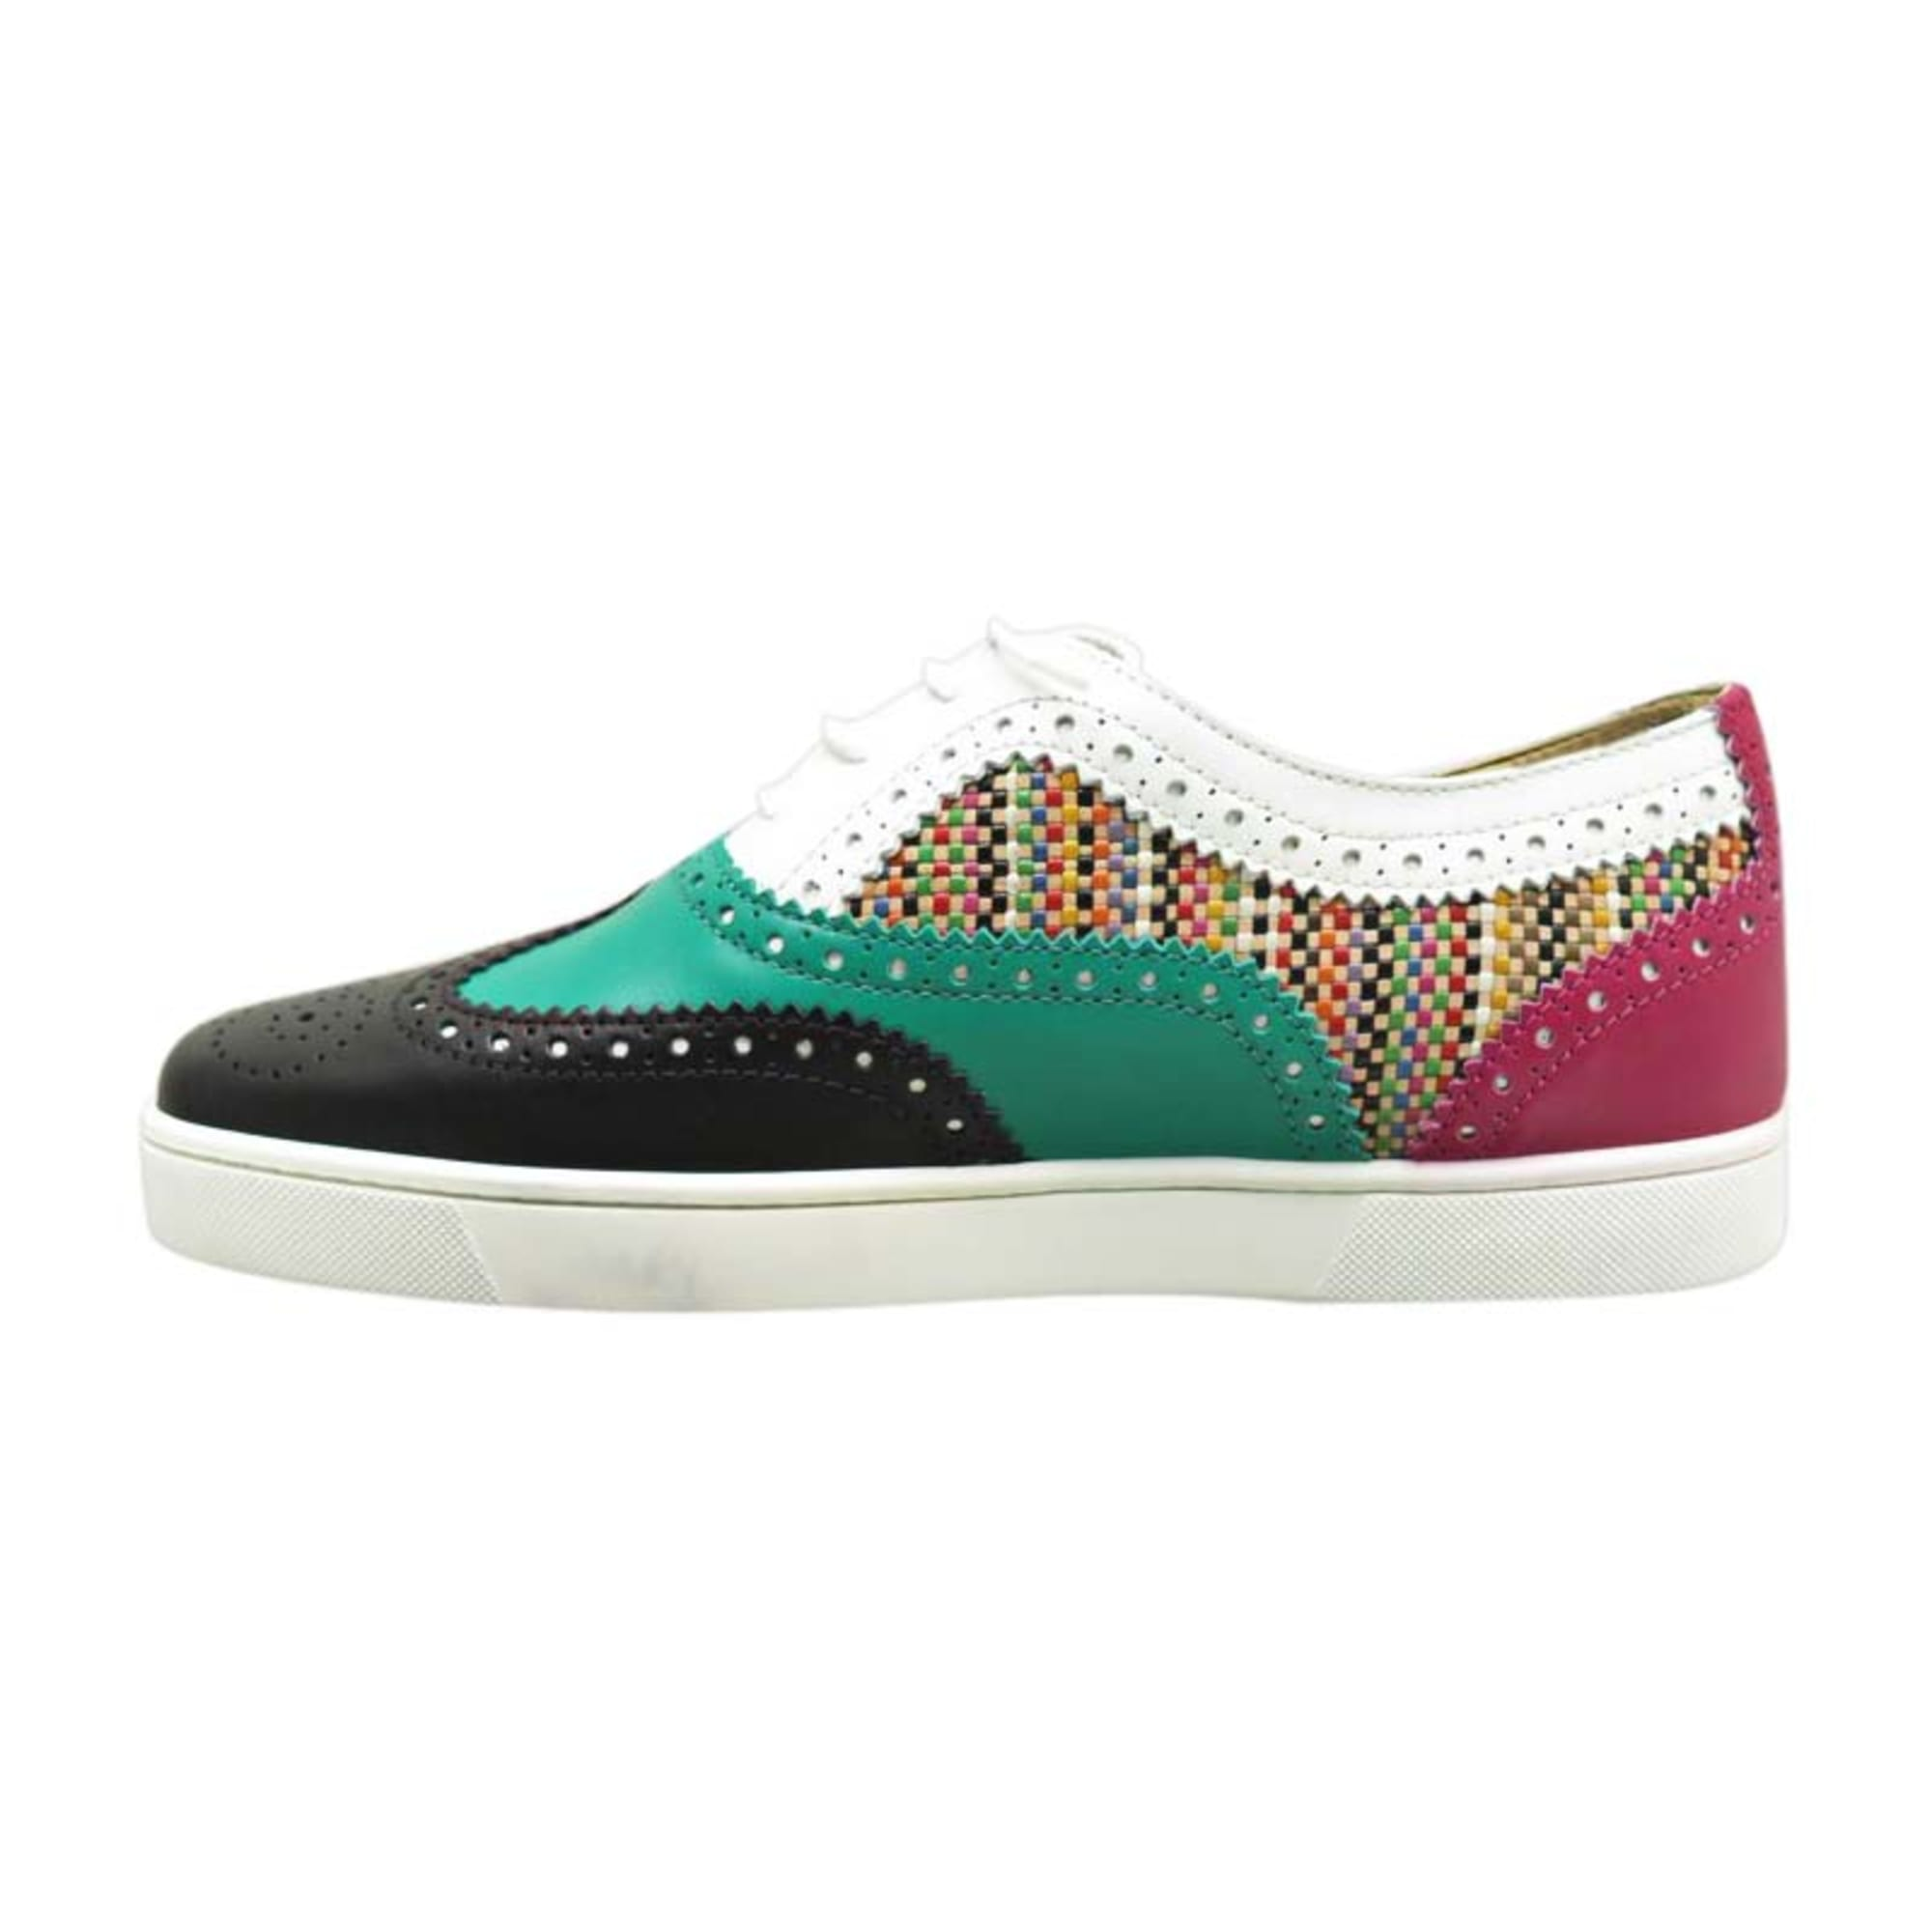 Lace Up Shoes CHRISTIAN LOUBOUTIN Multicolor